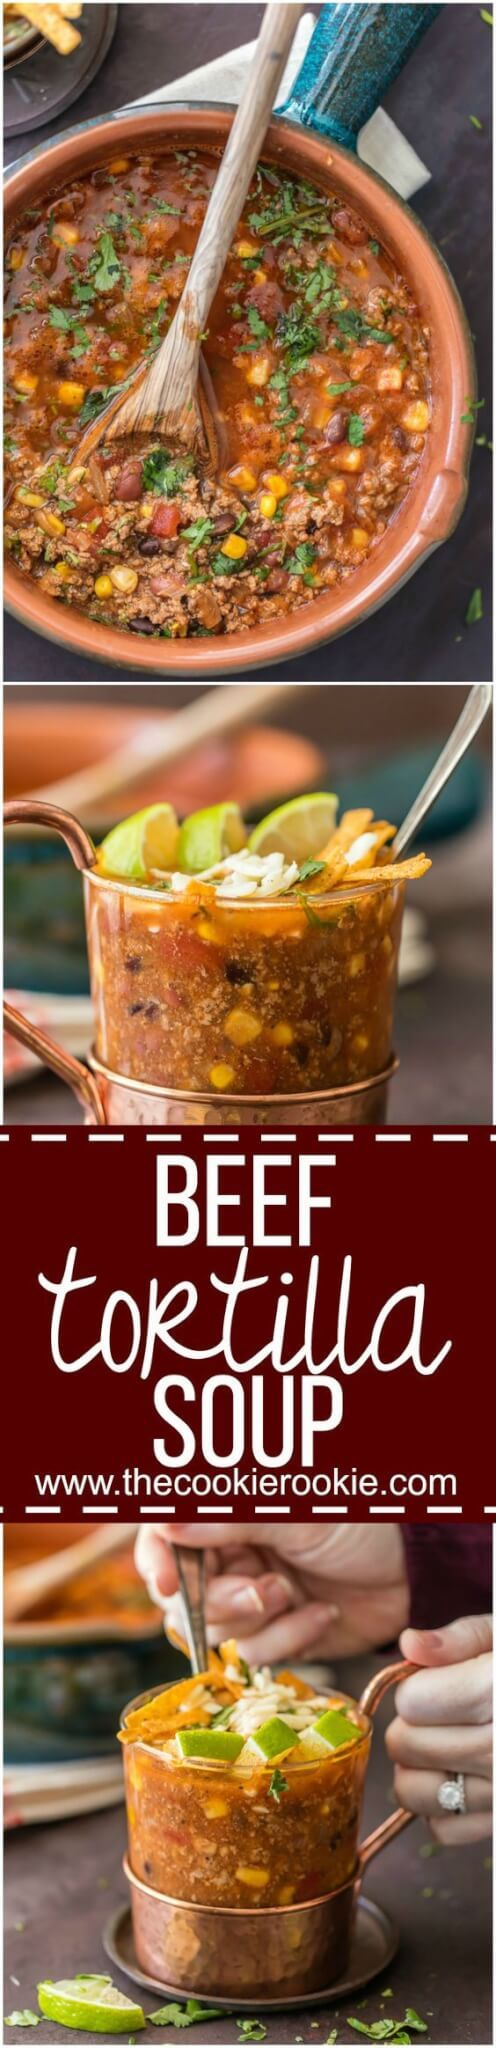 awesome Beef Tortilla Soup